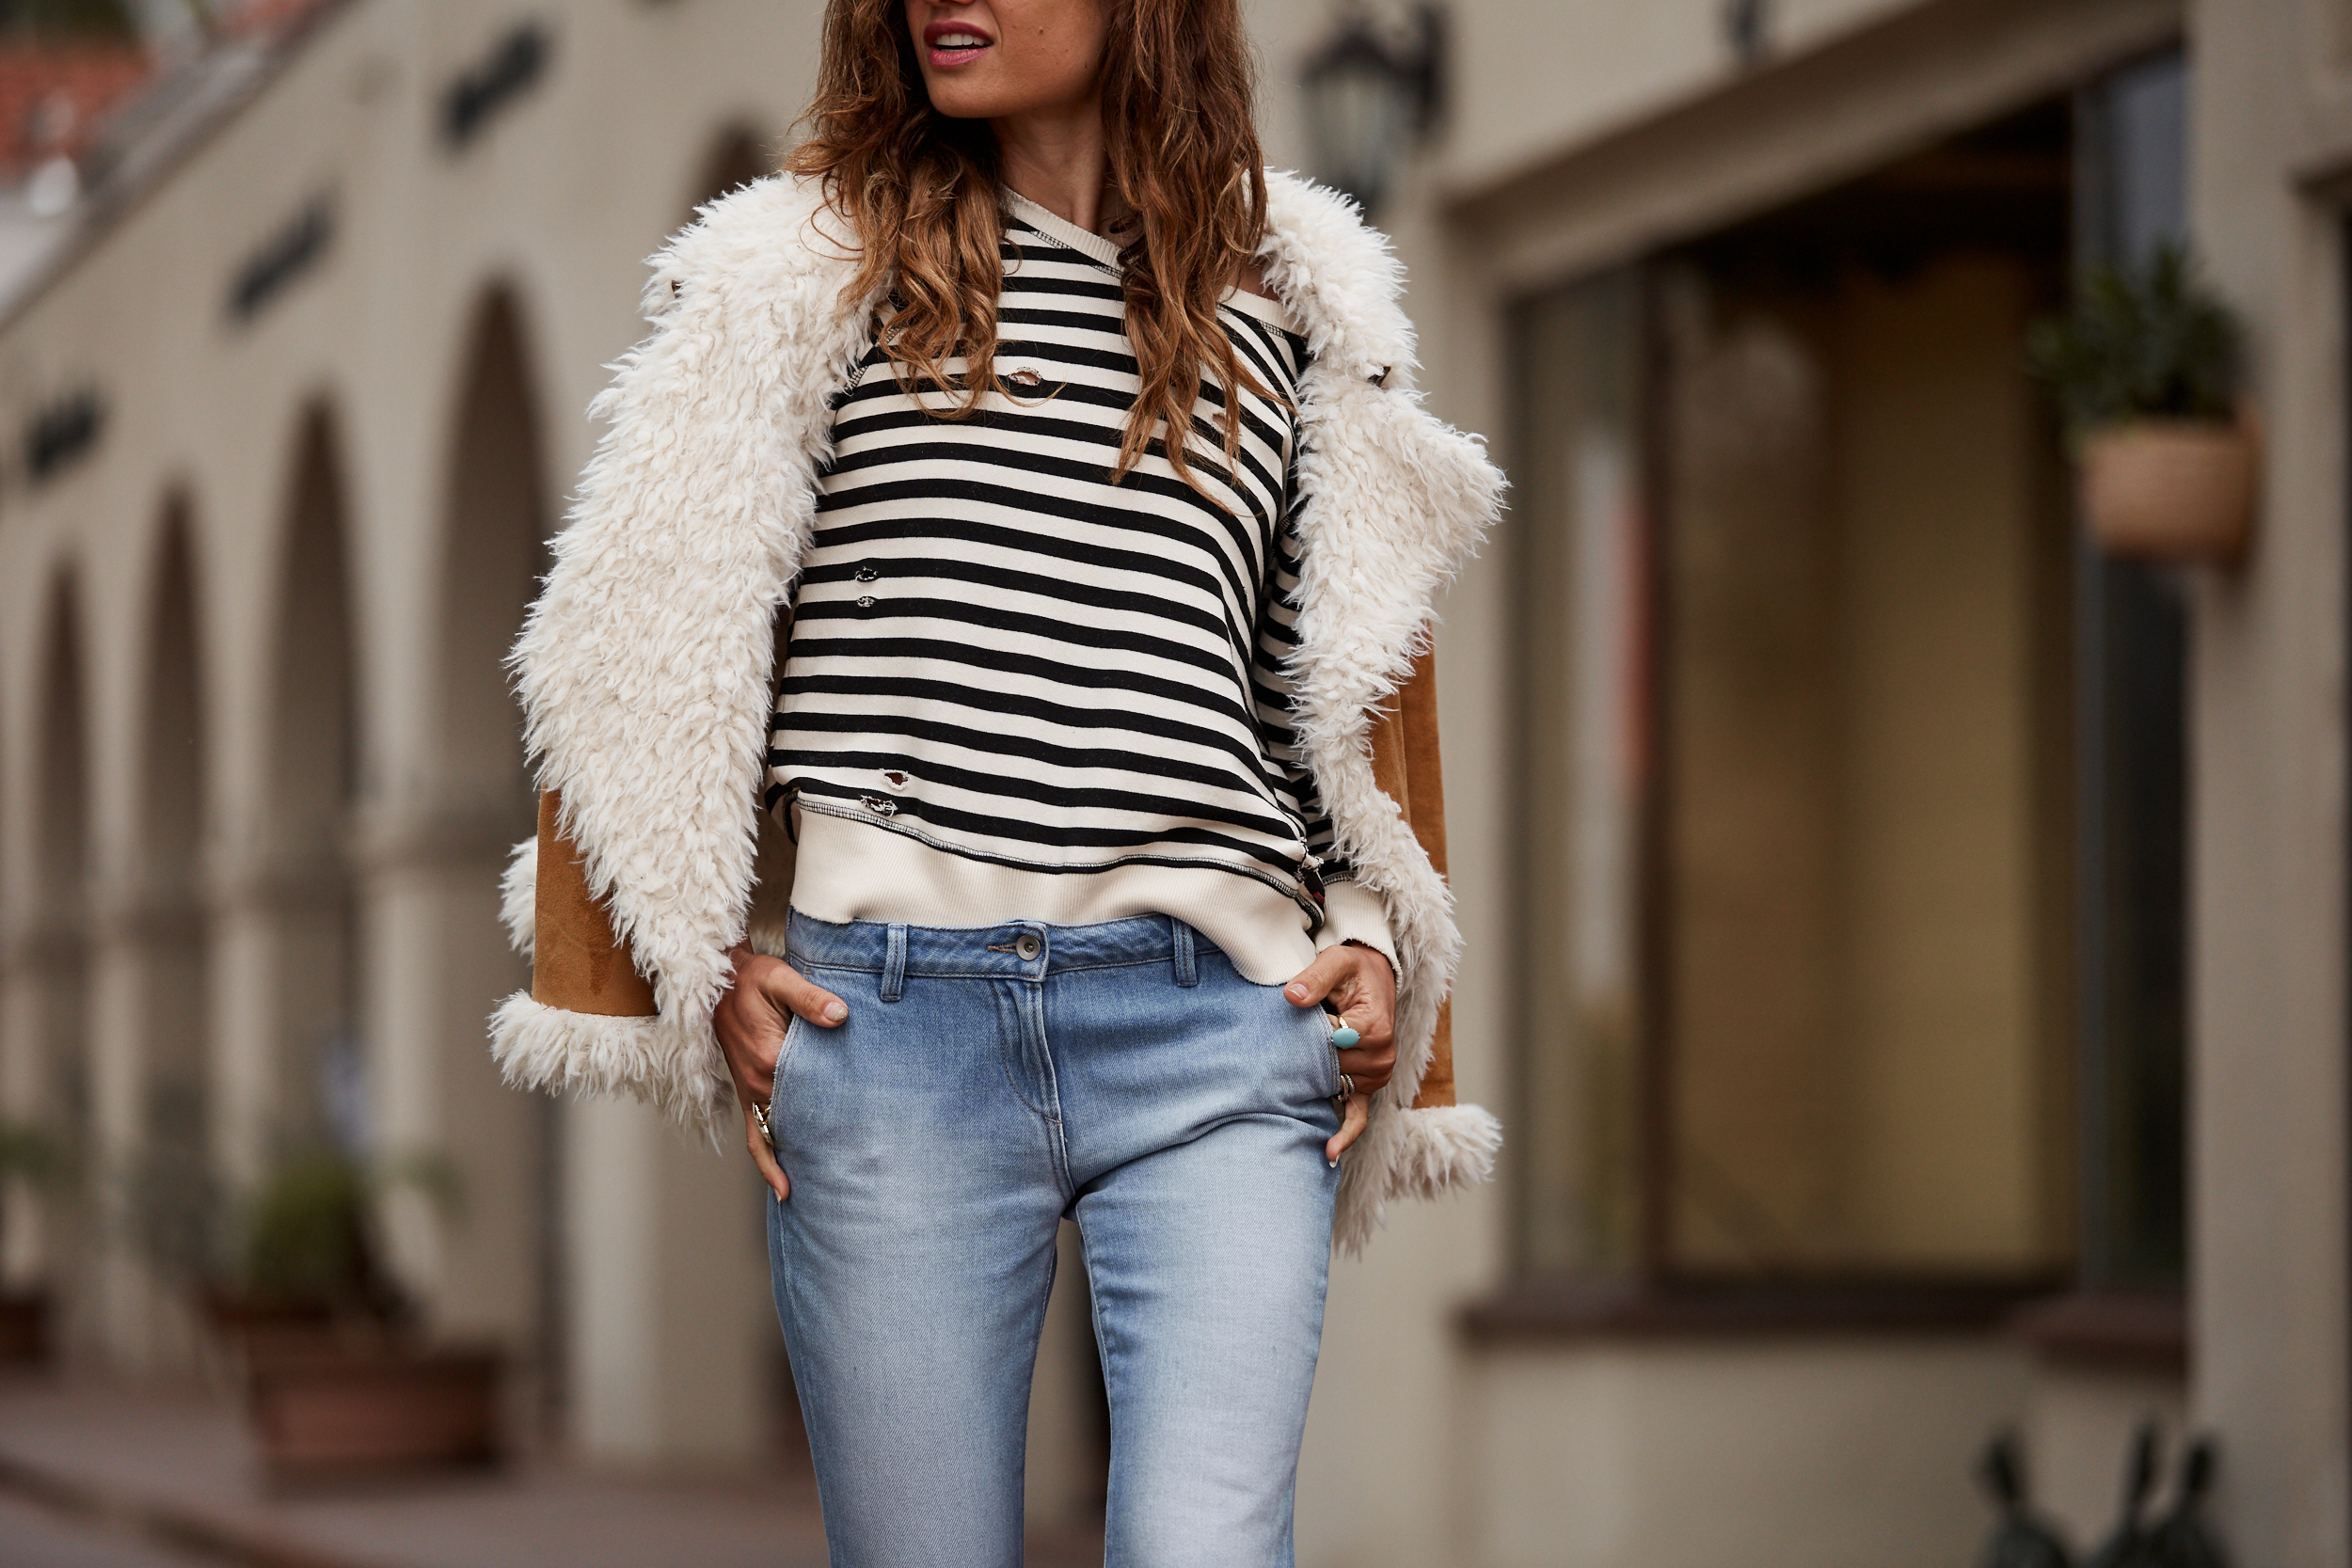 Stripe, Shearling, Casual Chic, Momstyle